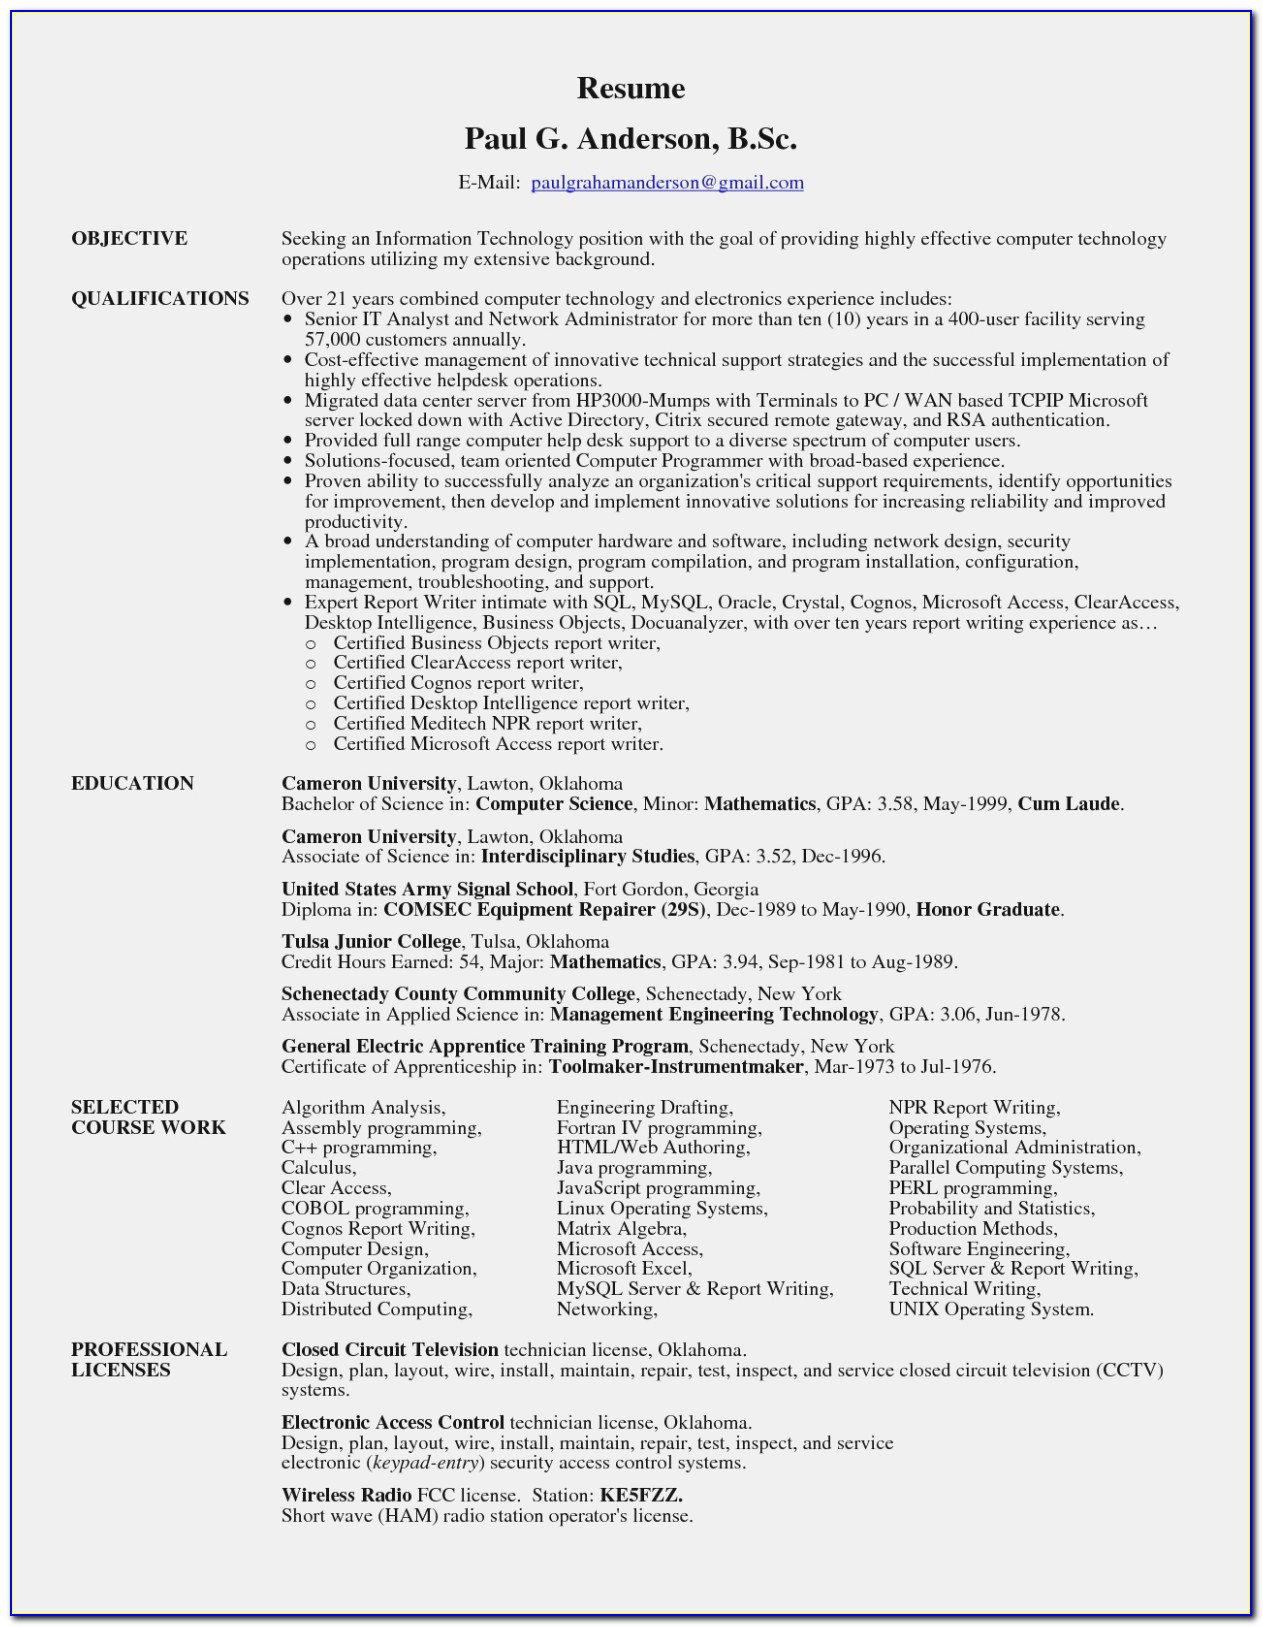 Technical Resume Writing Services Unique Technical Resume Writer Engineering Resume Writer